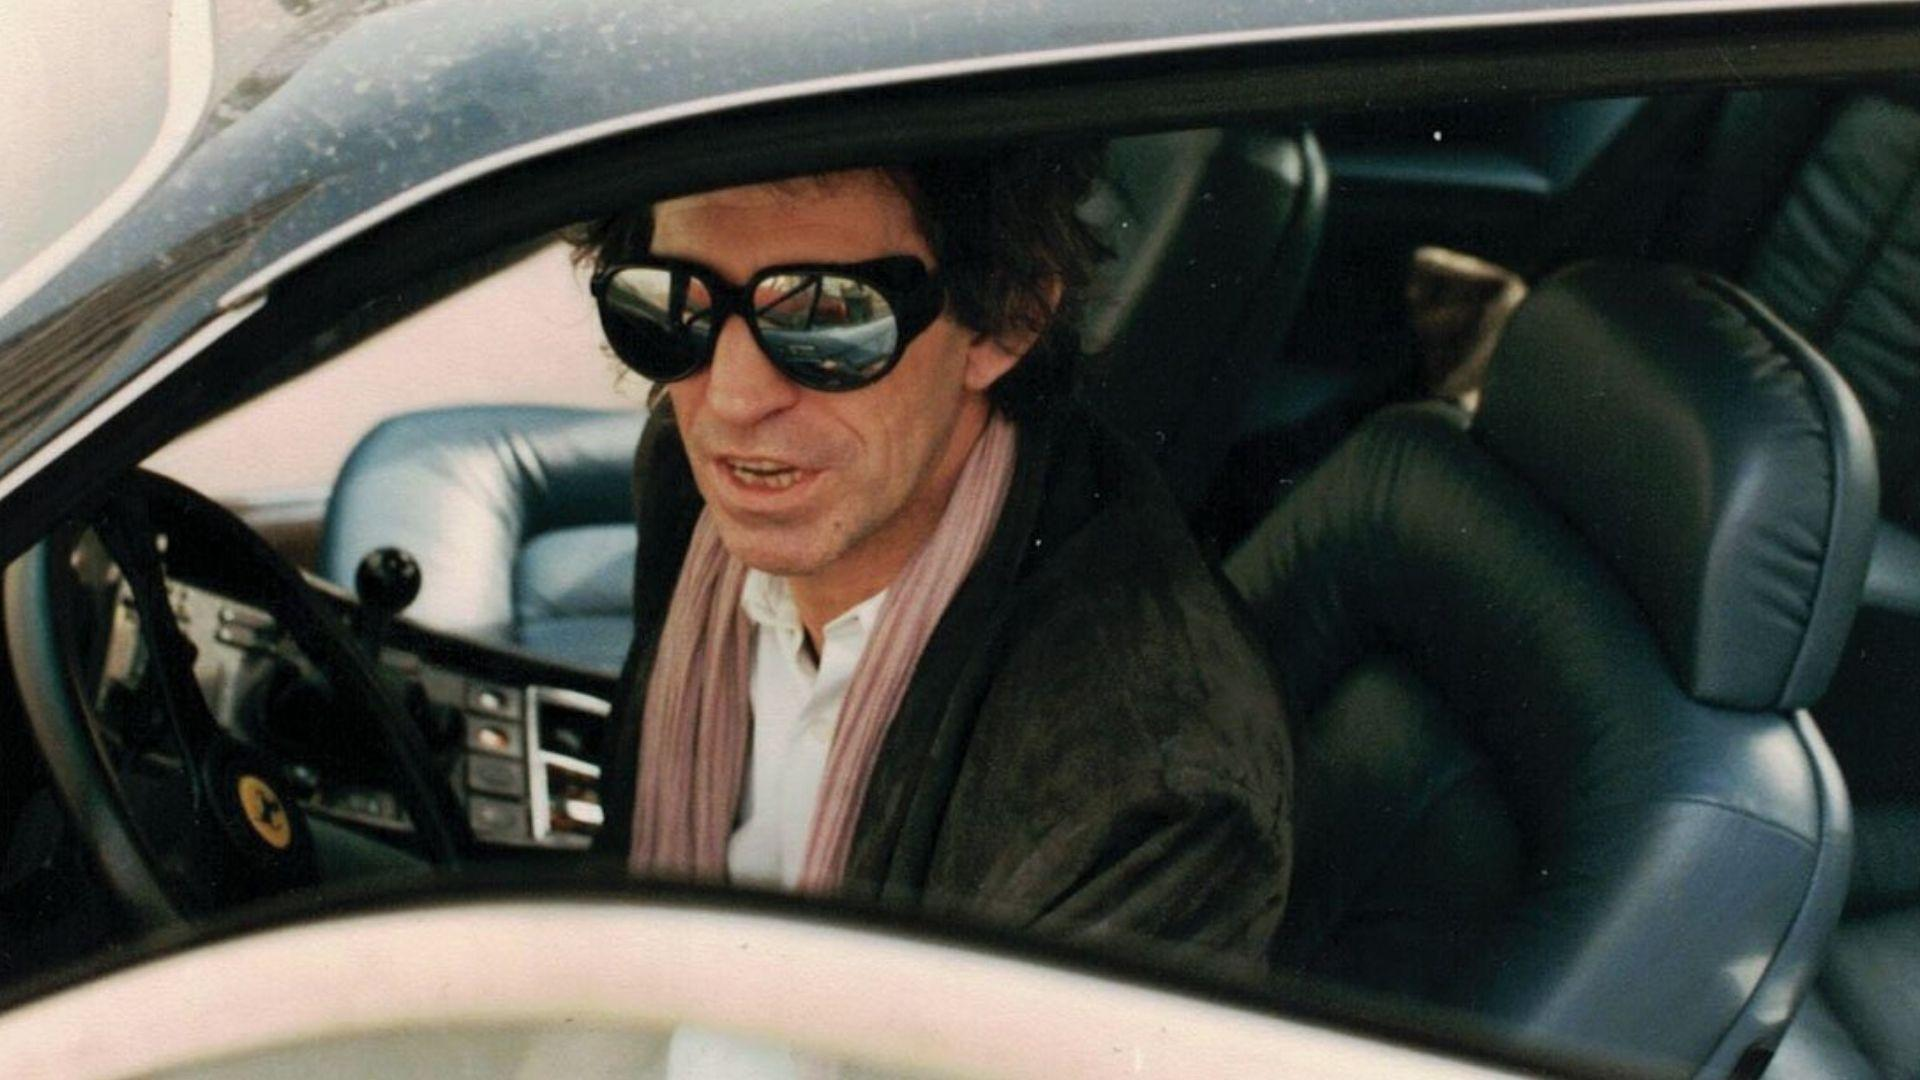 Keith Richards Has Some Crazy Car Stories